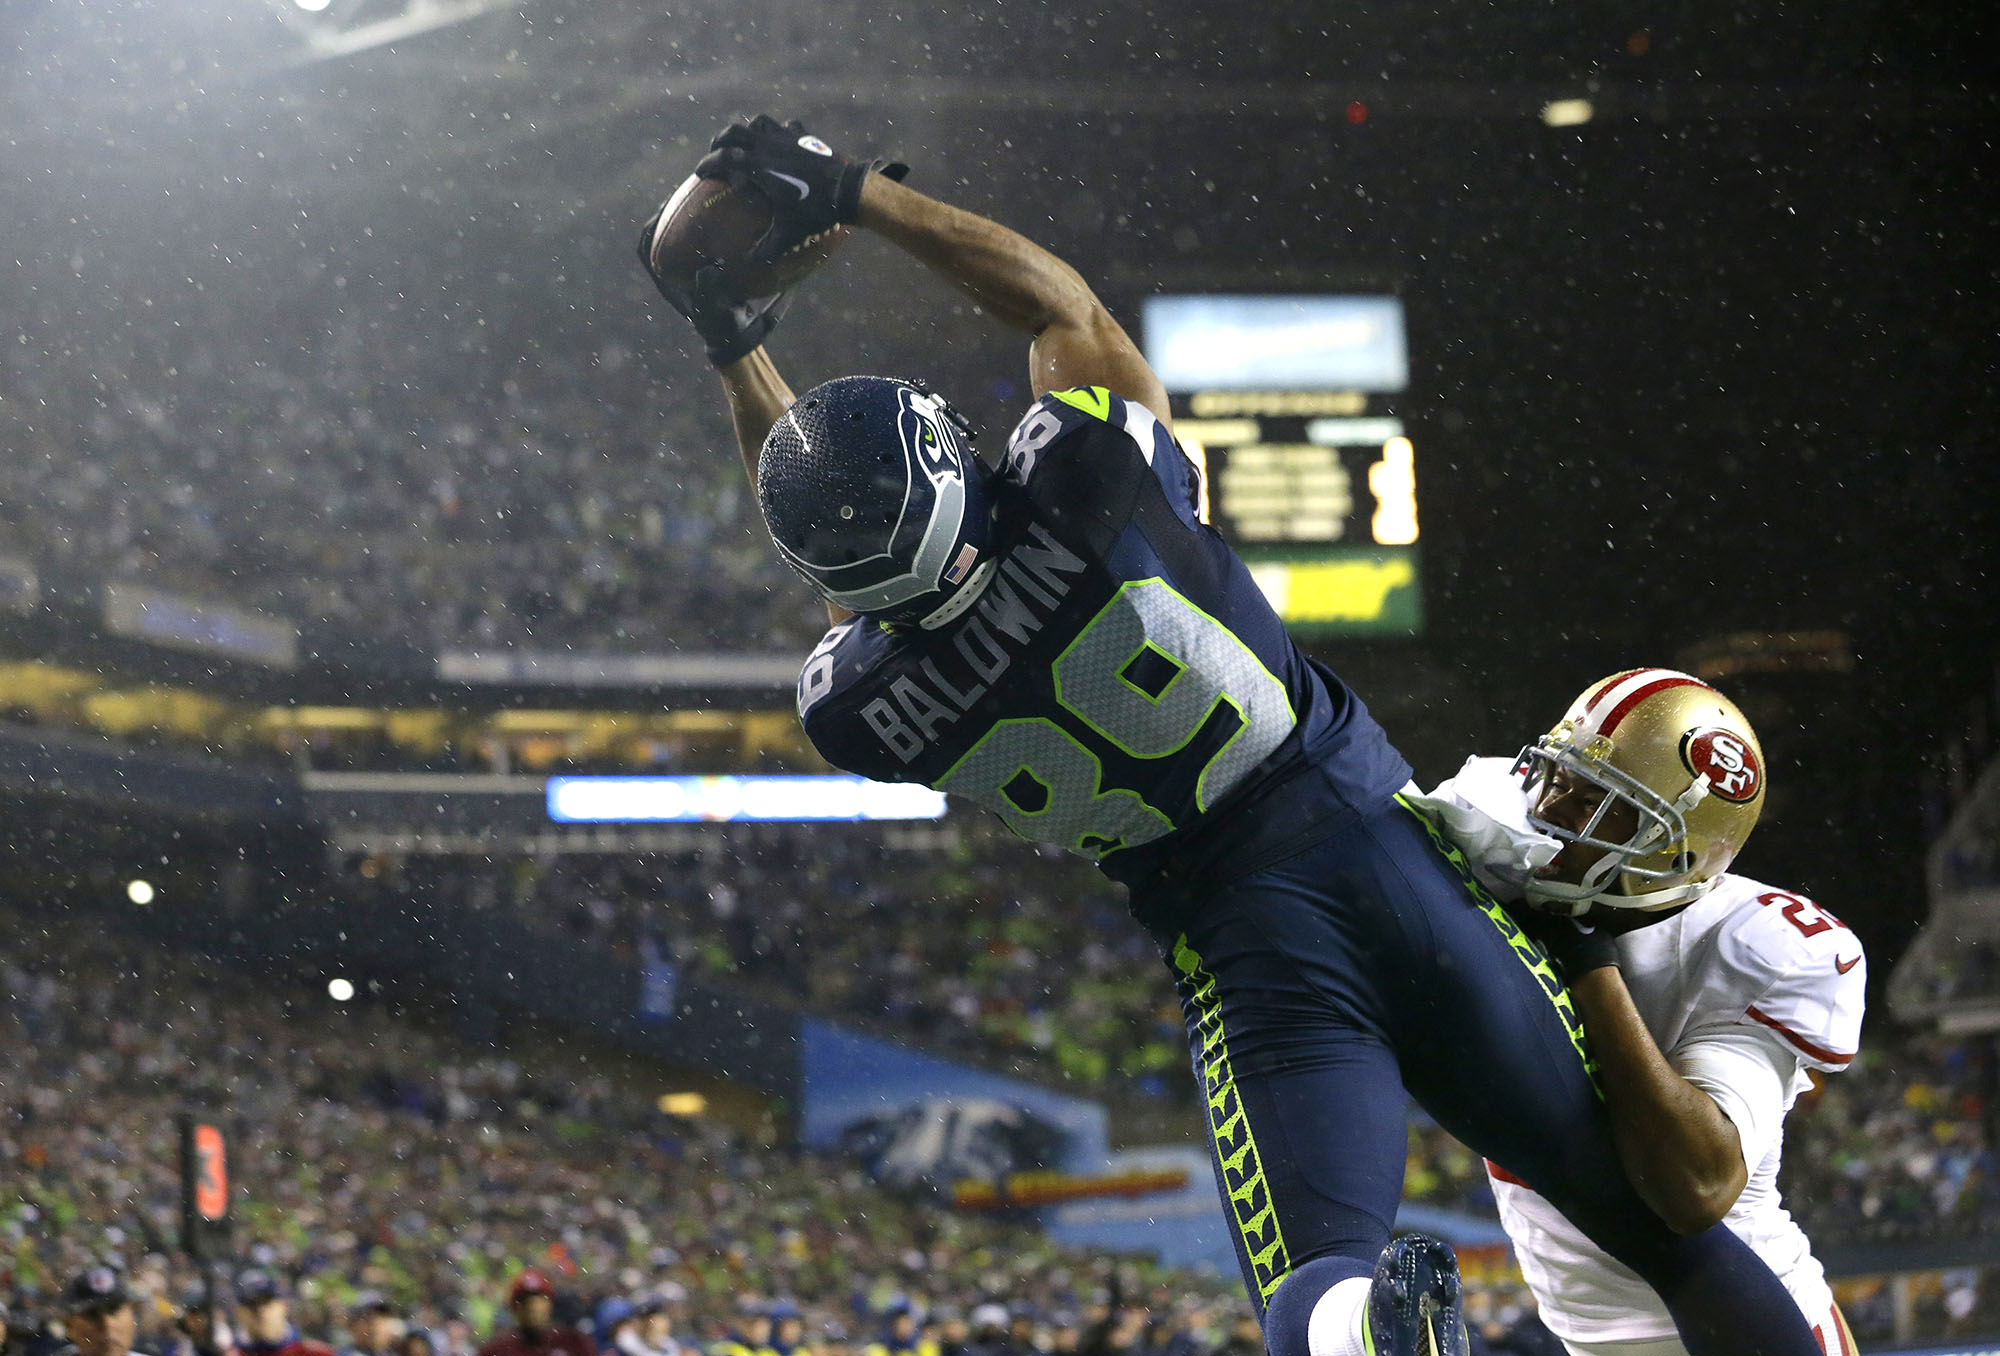 seahawks players suspended for steroids